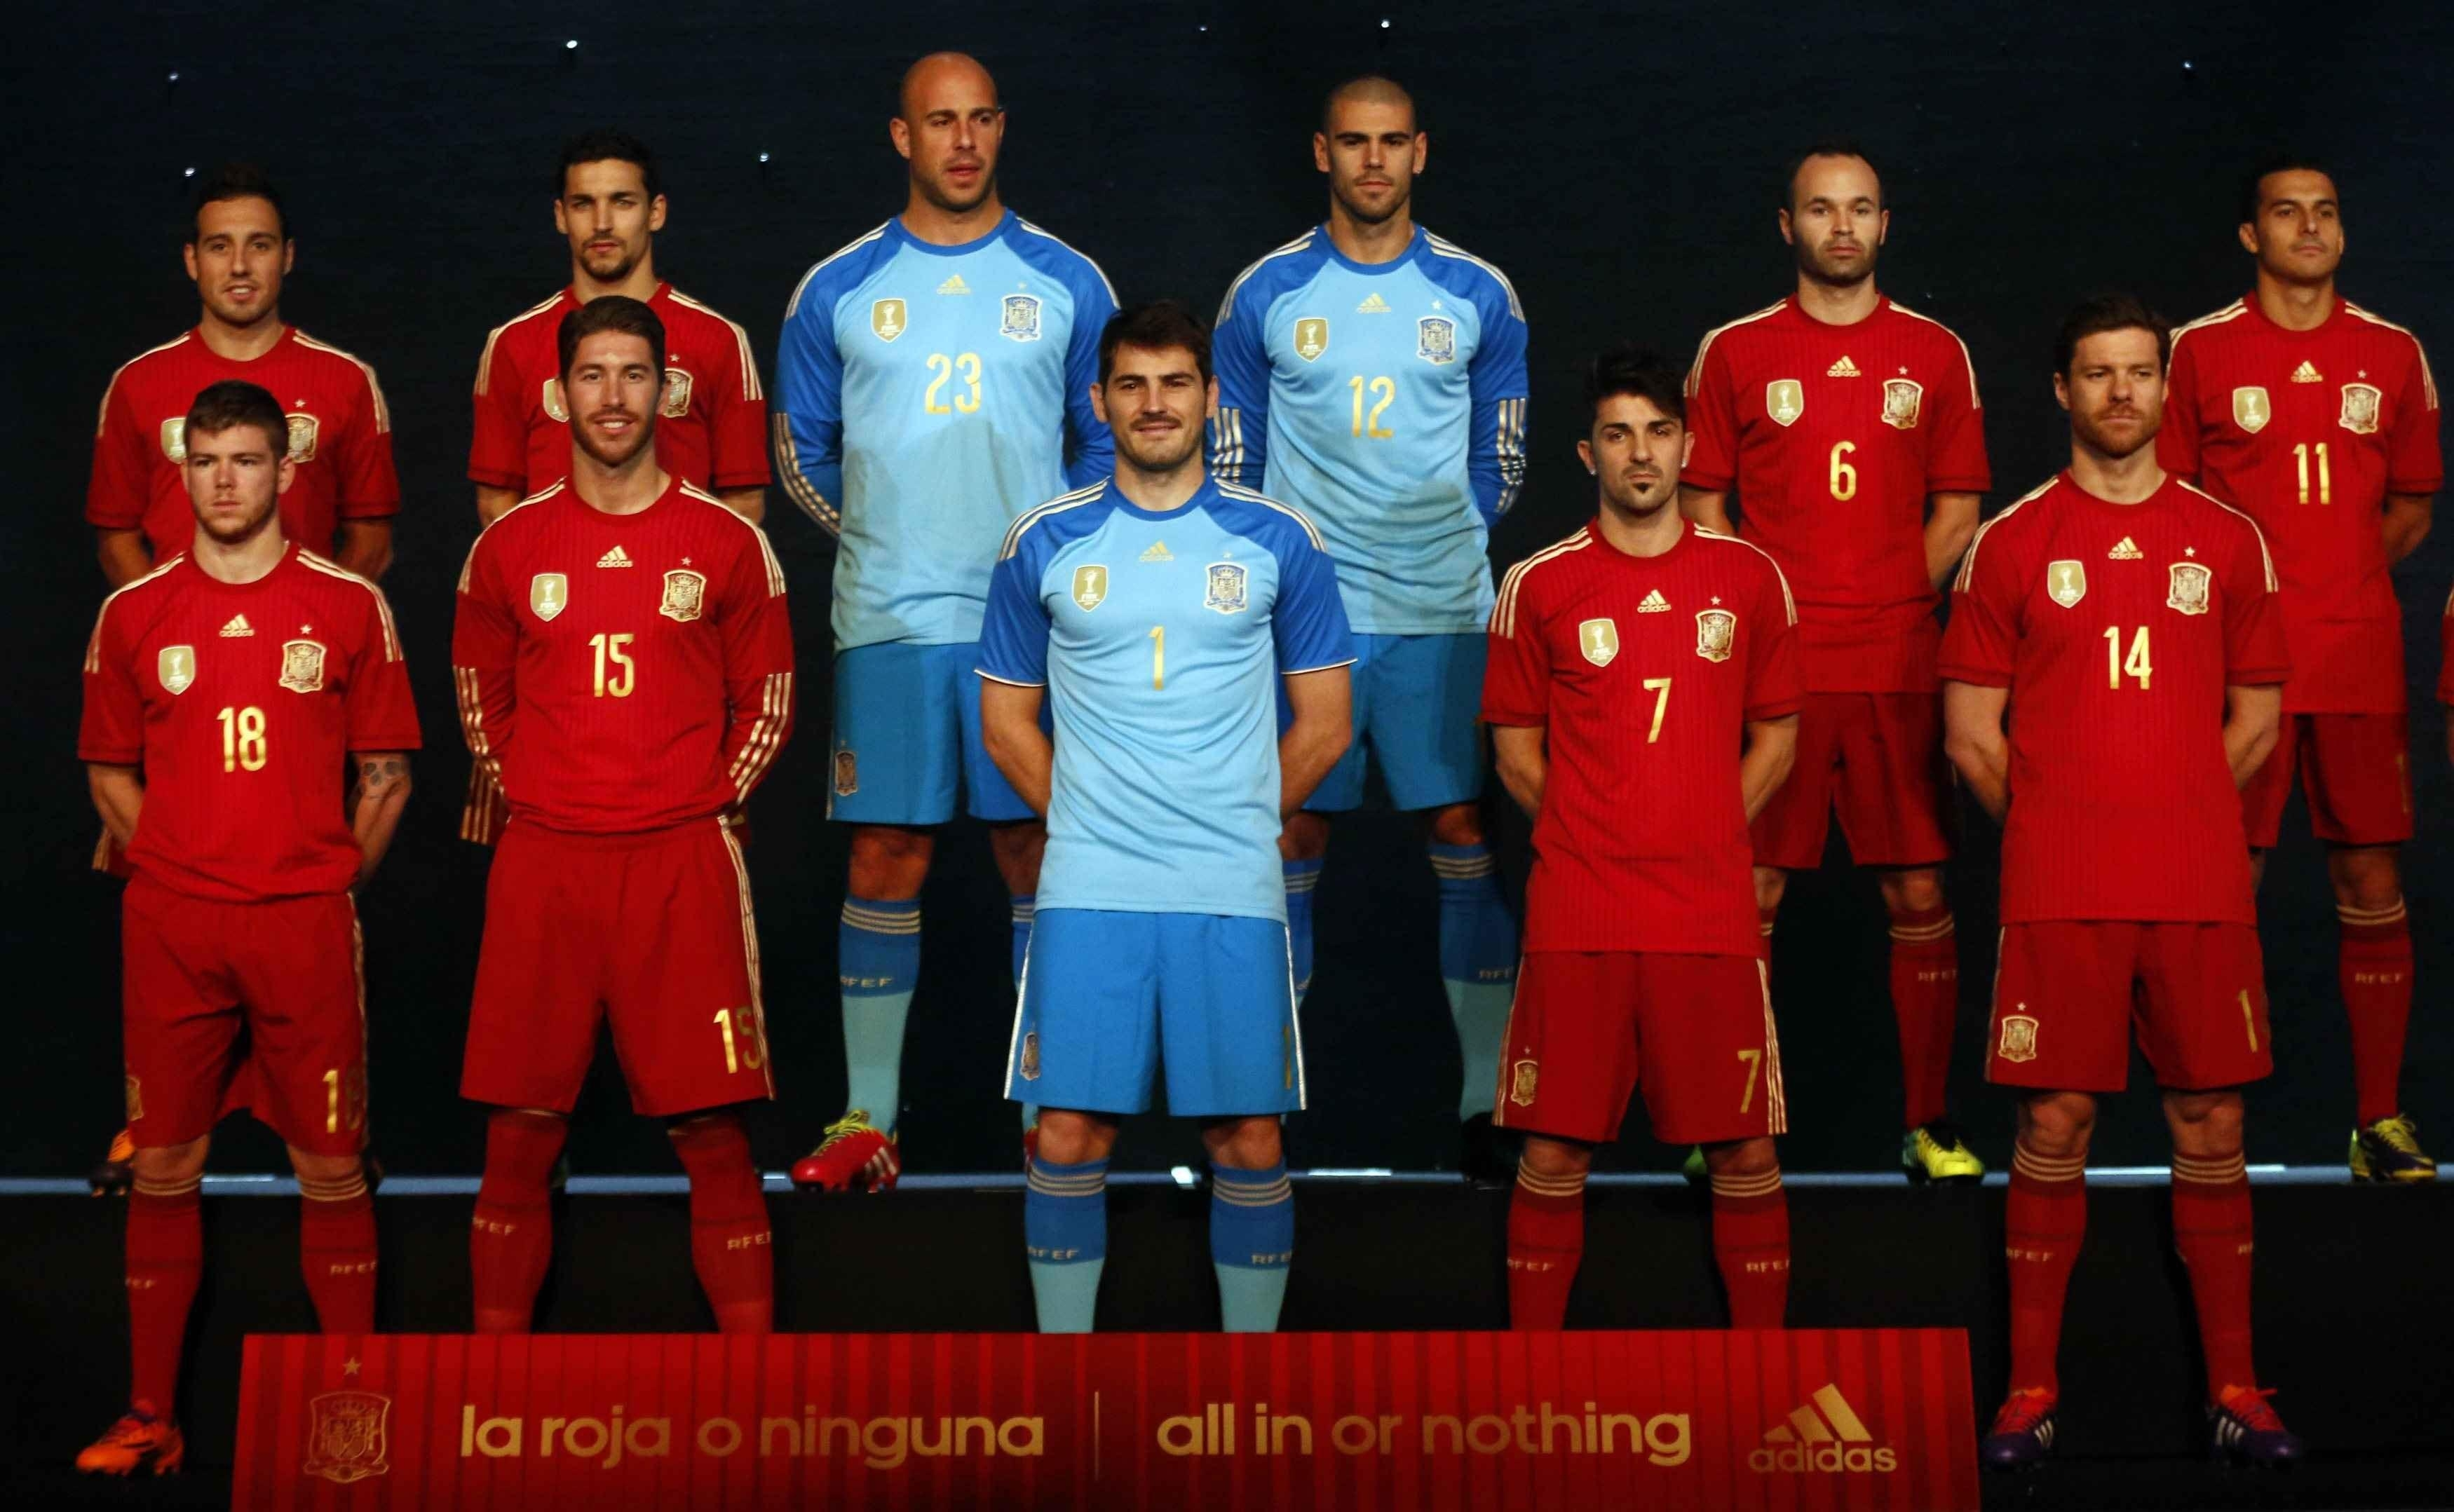 spain national team wallpapers 2015 - wallpaper cave